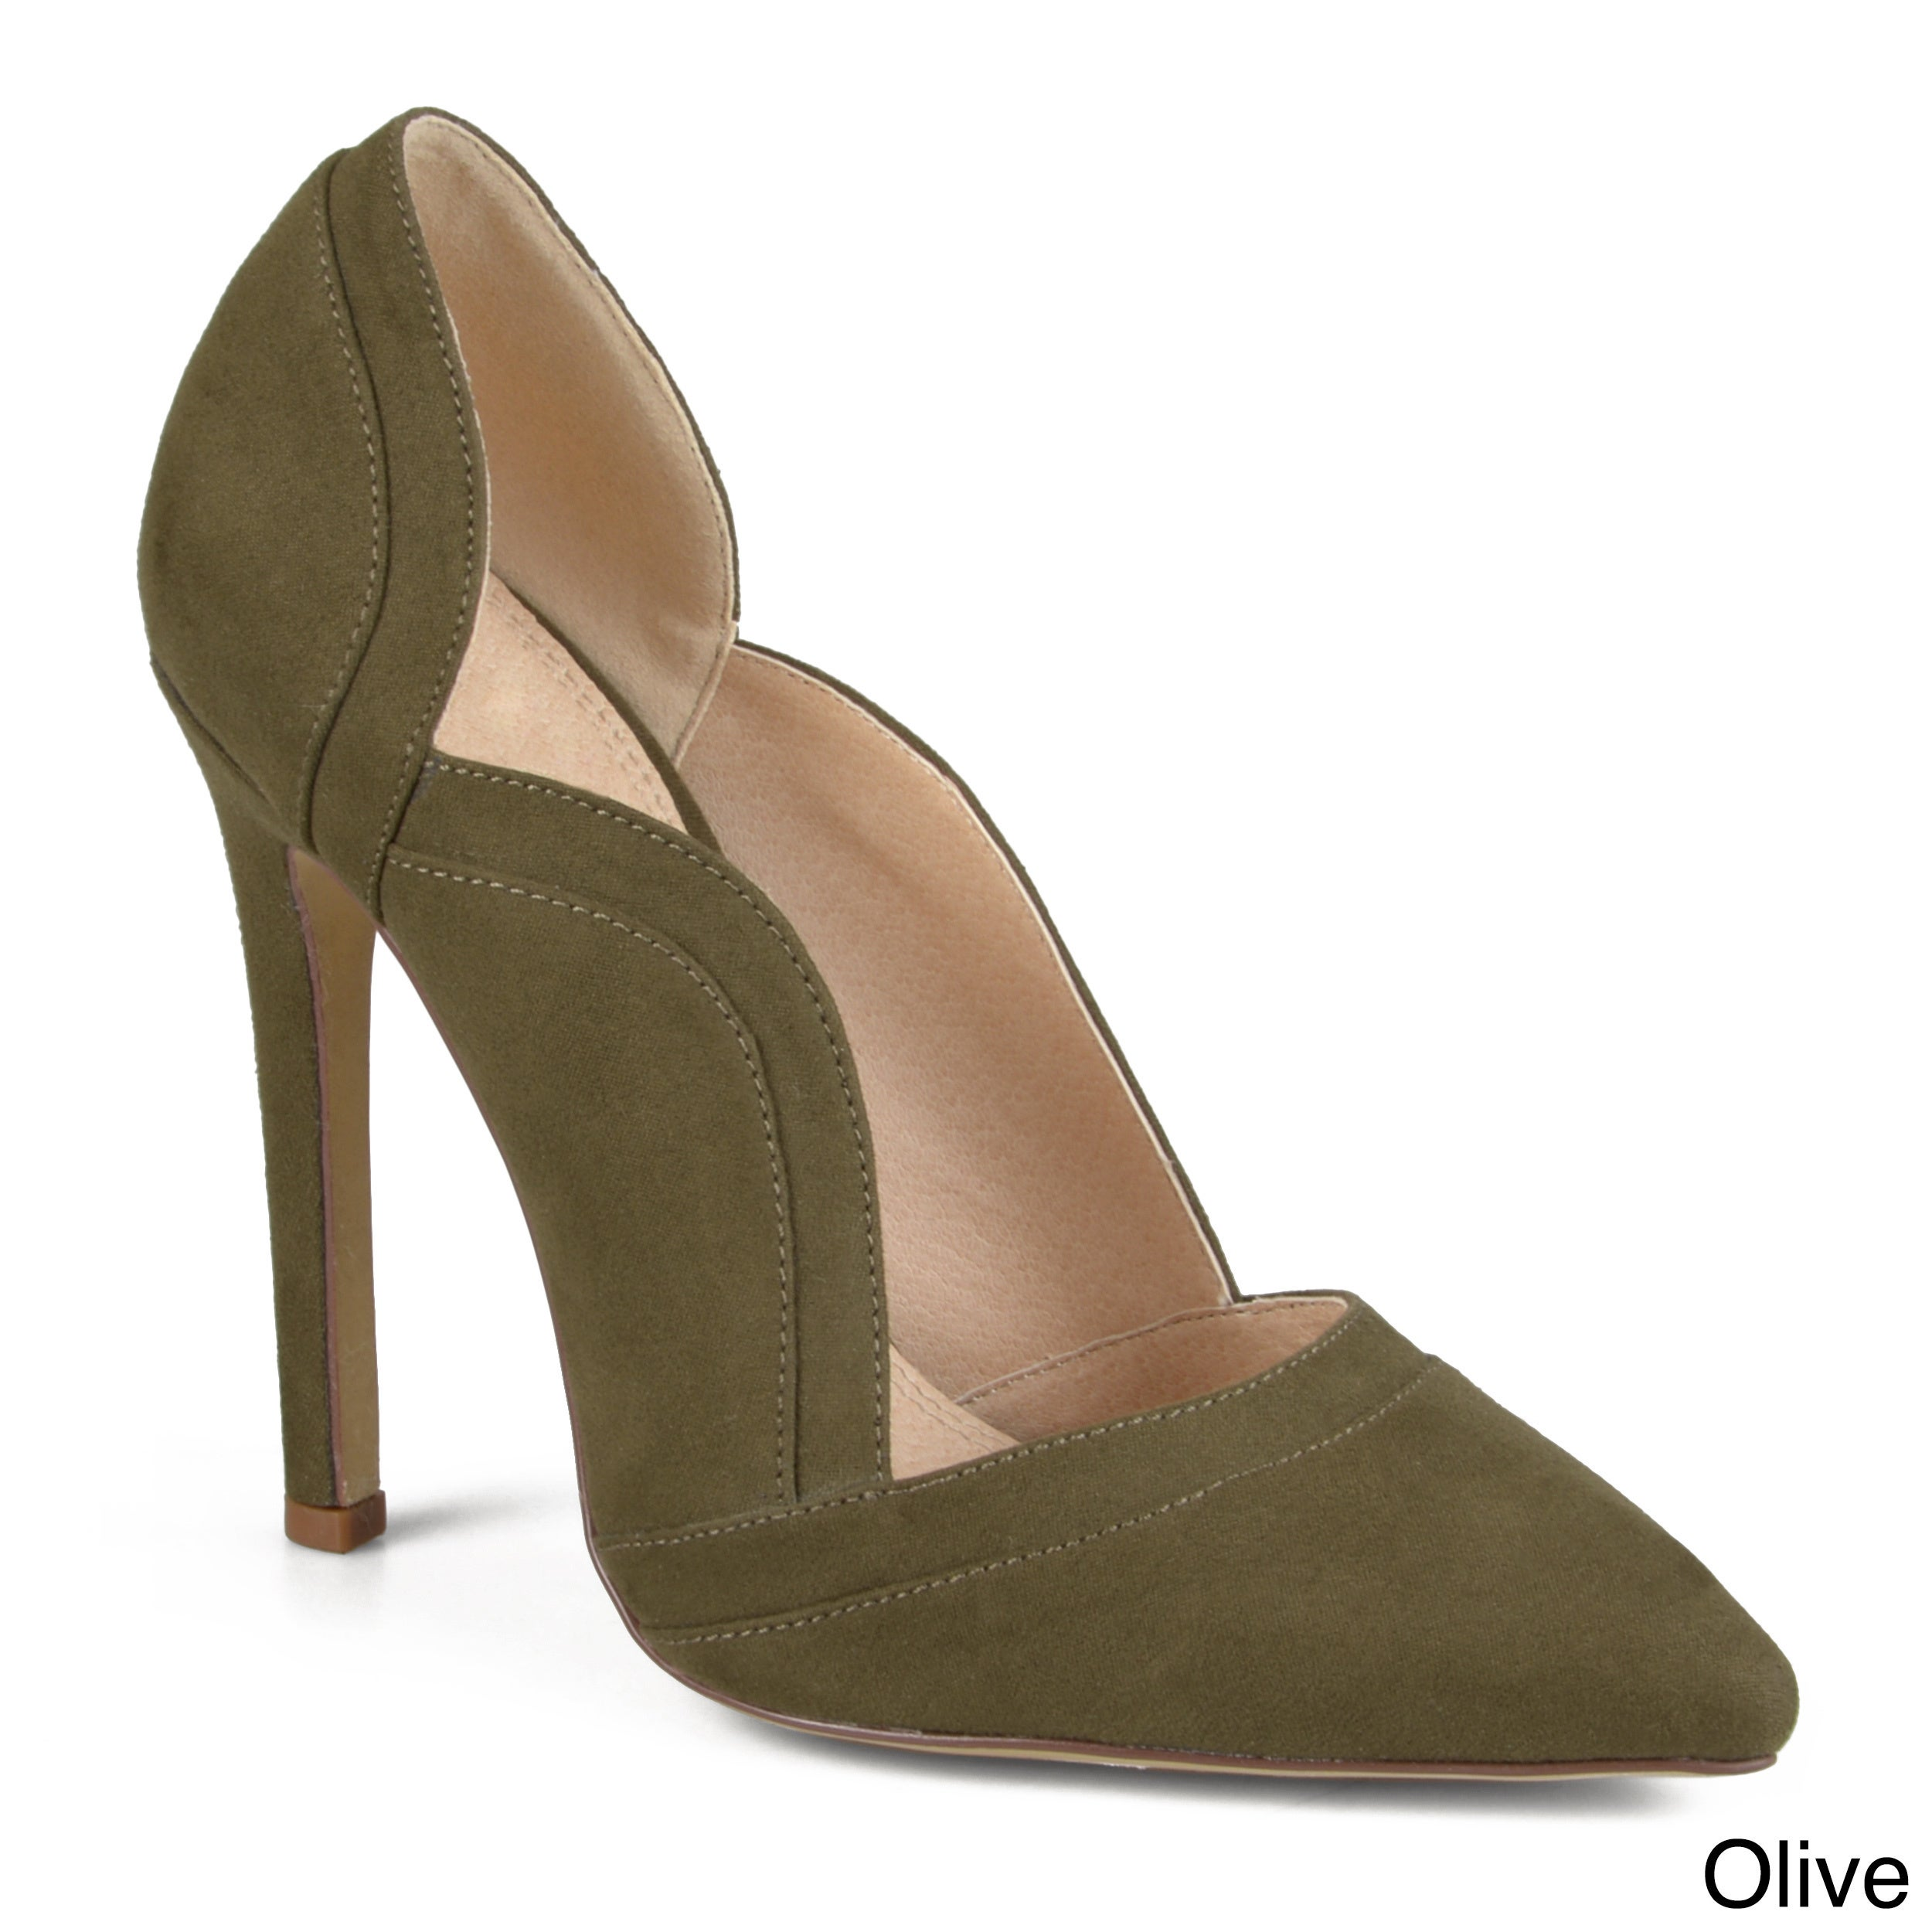 f37940d0b32 Shop Journee Collection Women s  Adley  Faux Suede Scalloped Pumps - Free  Shipping Today - Overstock - 12073918